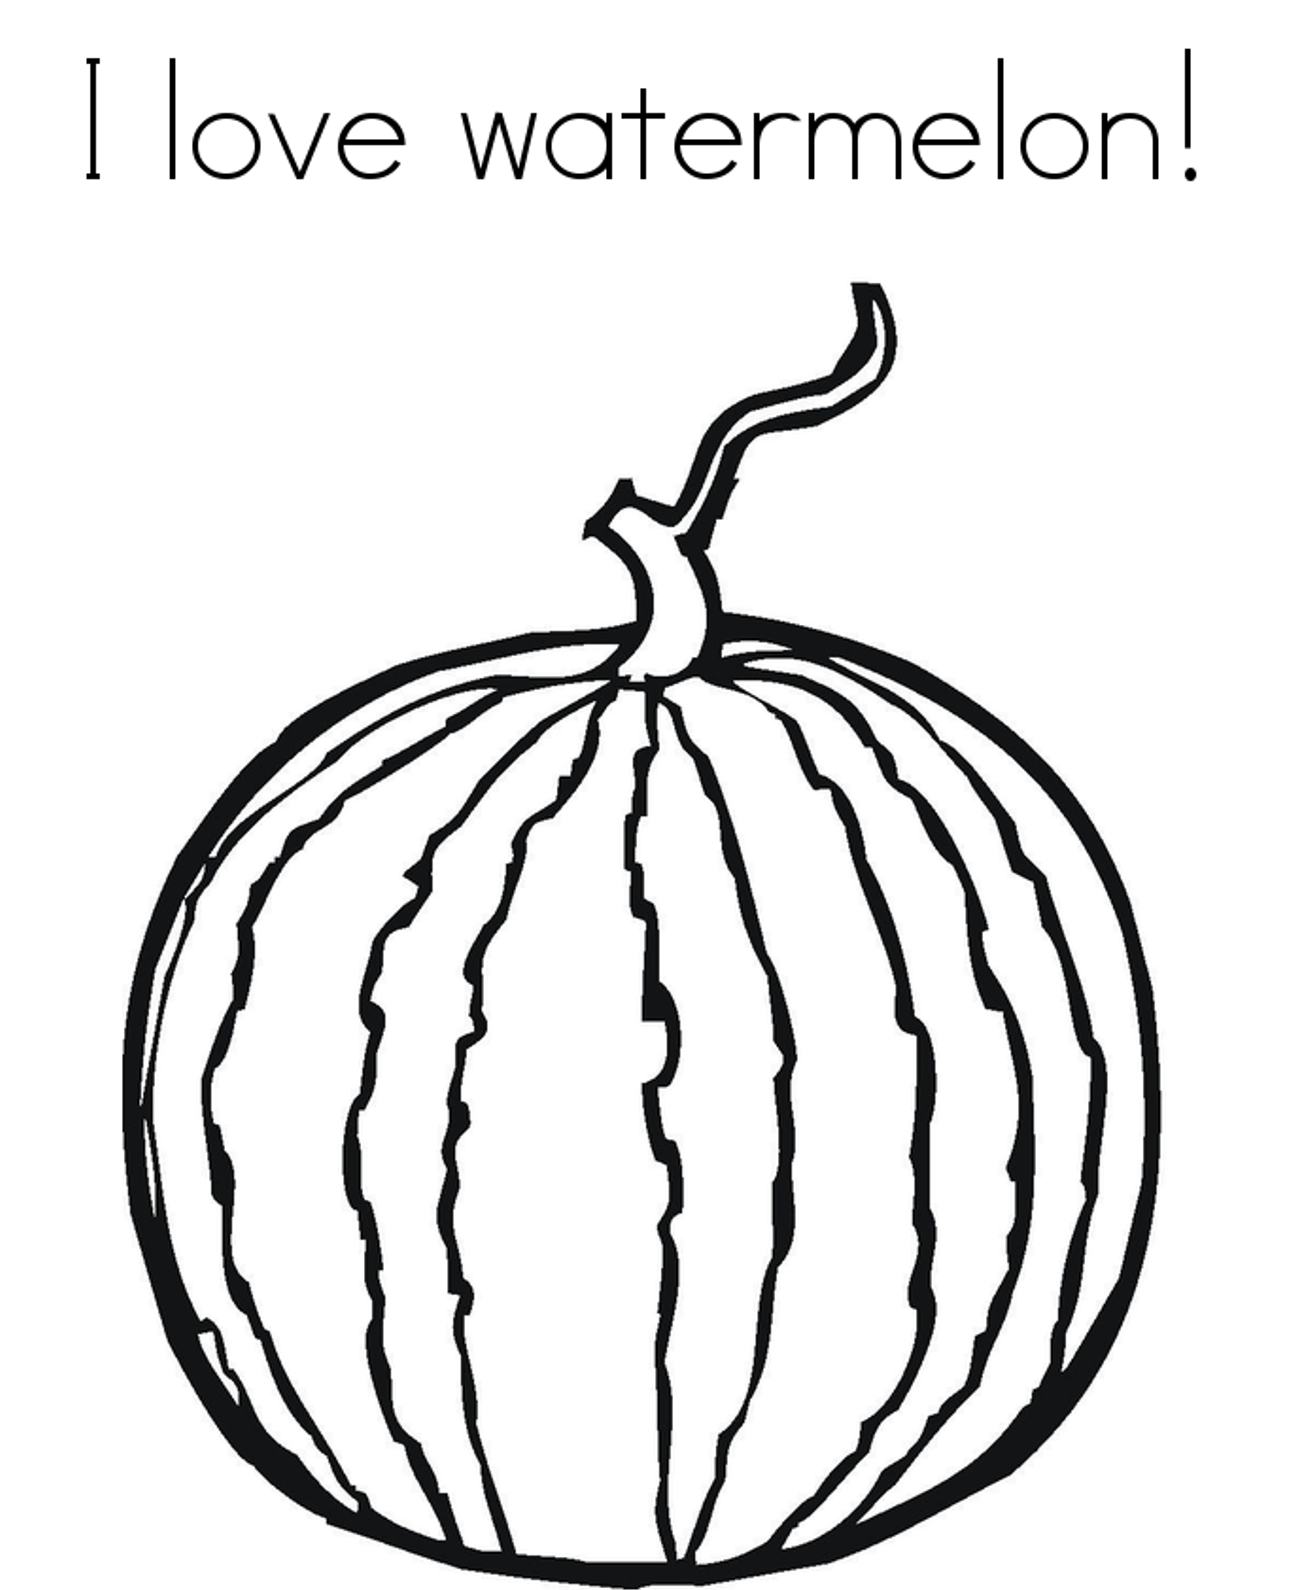 watermelon coloring images water melon drawing at getdrawings free download images coloring watermelon